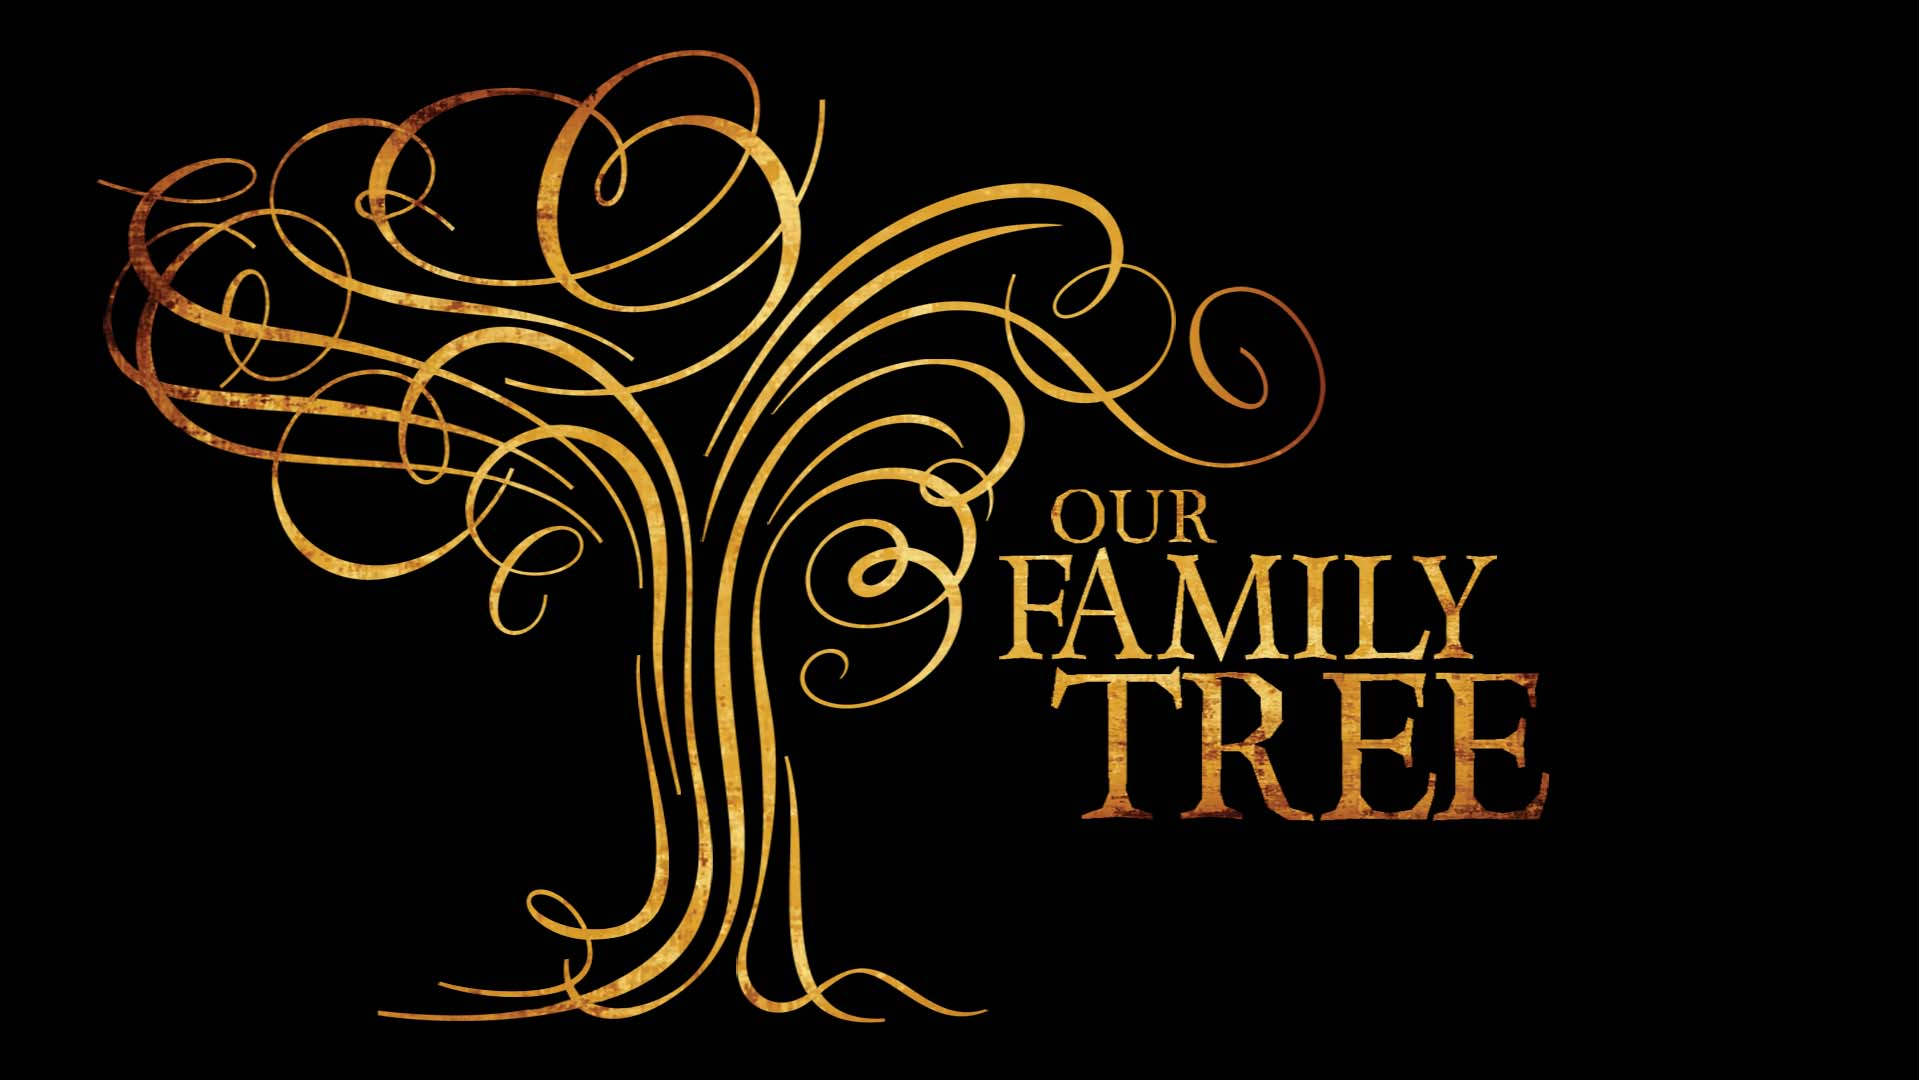 Family tree images graphics - Family tree desktop wallpaper ...